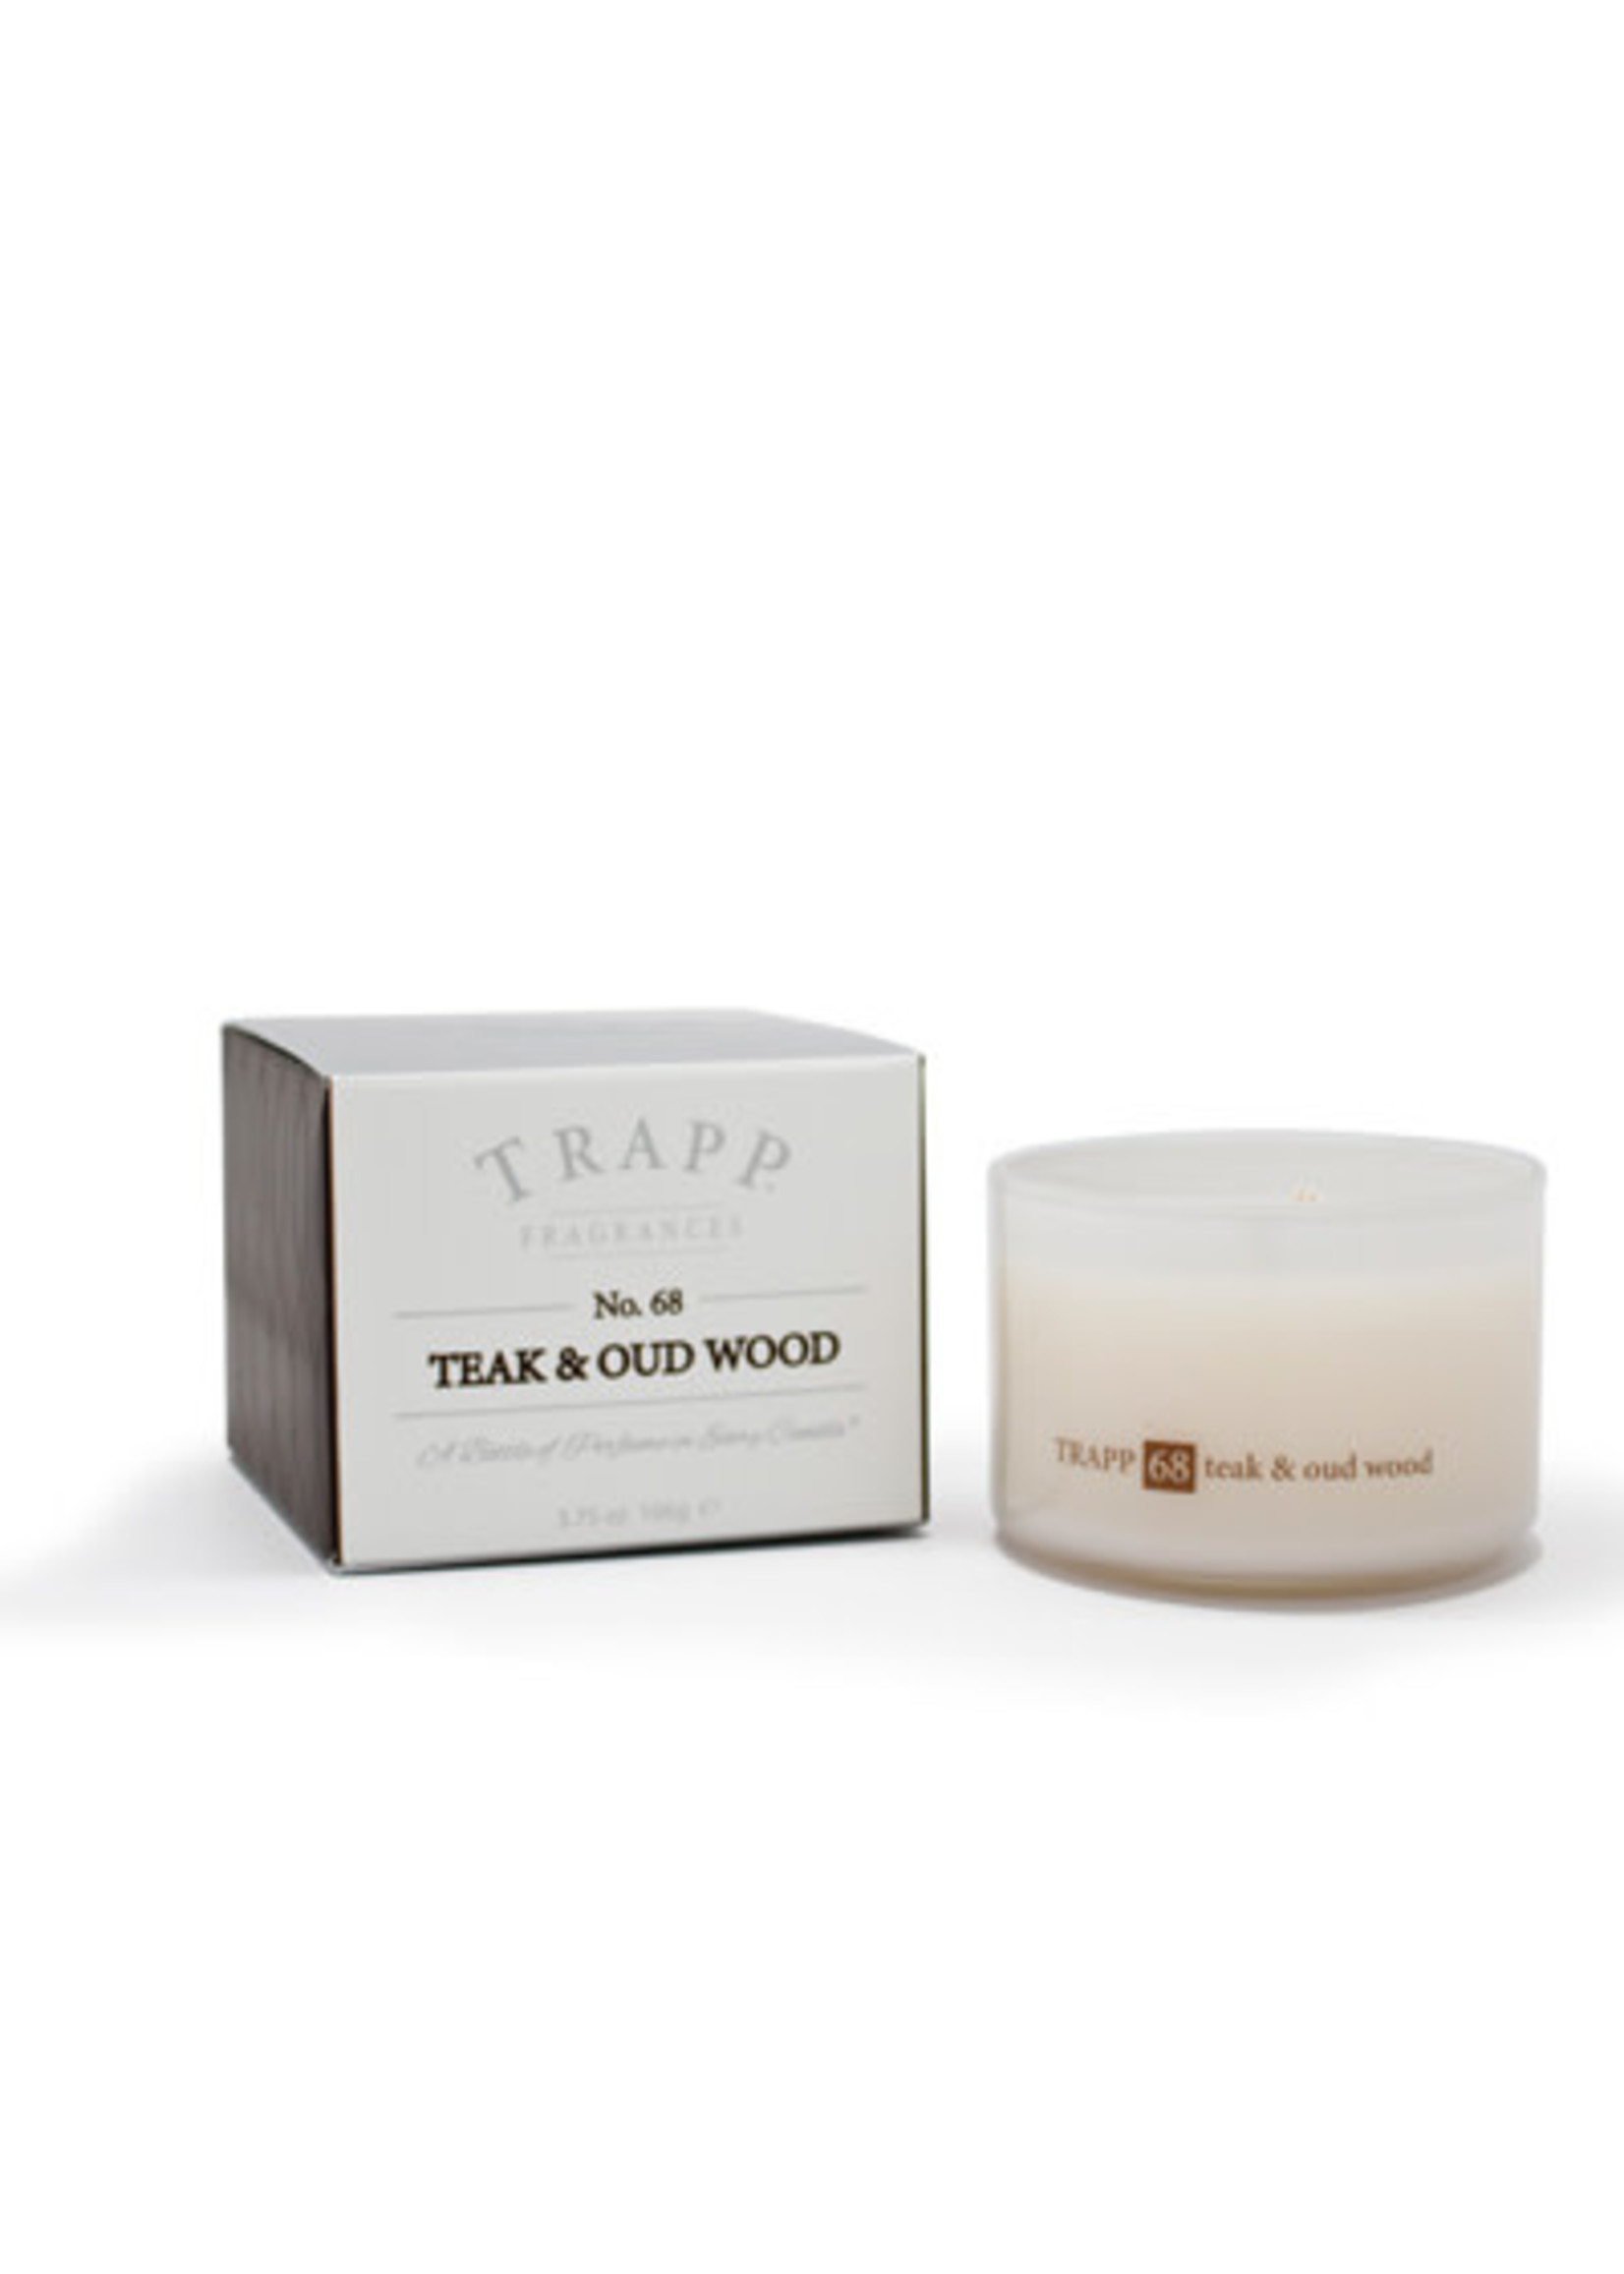 Trapp Candles Ambiance Collection - No. 68 Teak and Oud Wood - 3.75 oz. Poured Candle